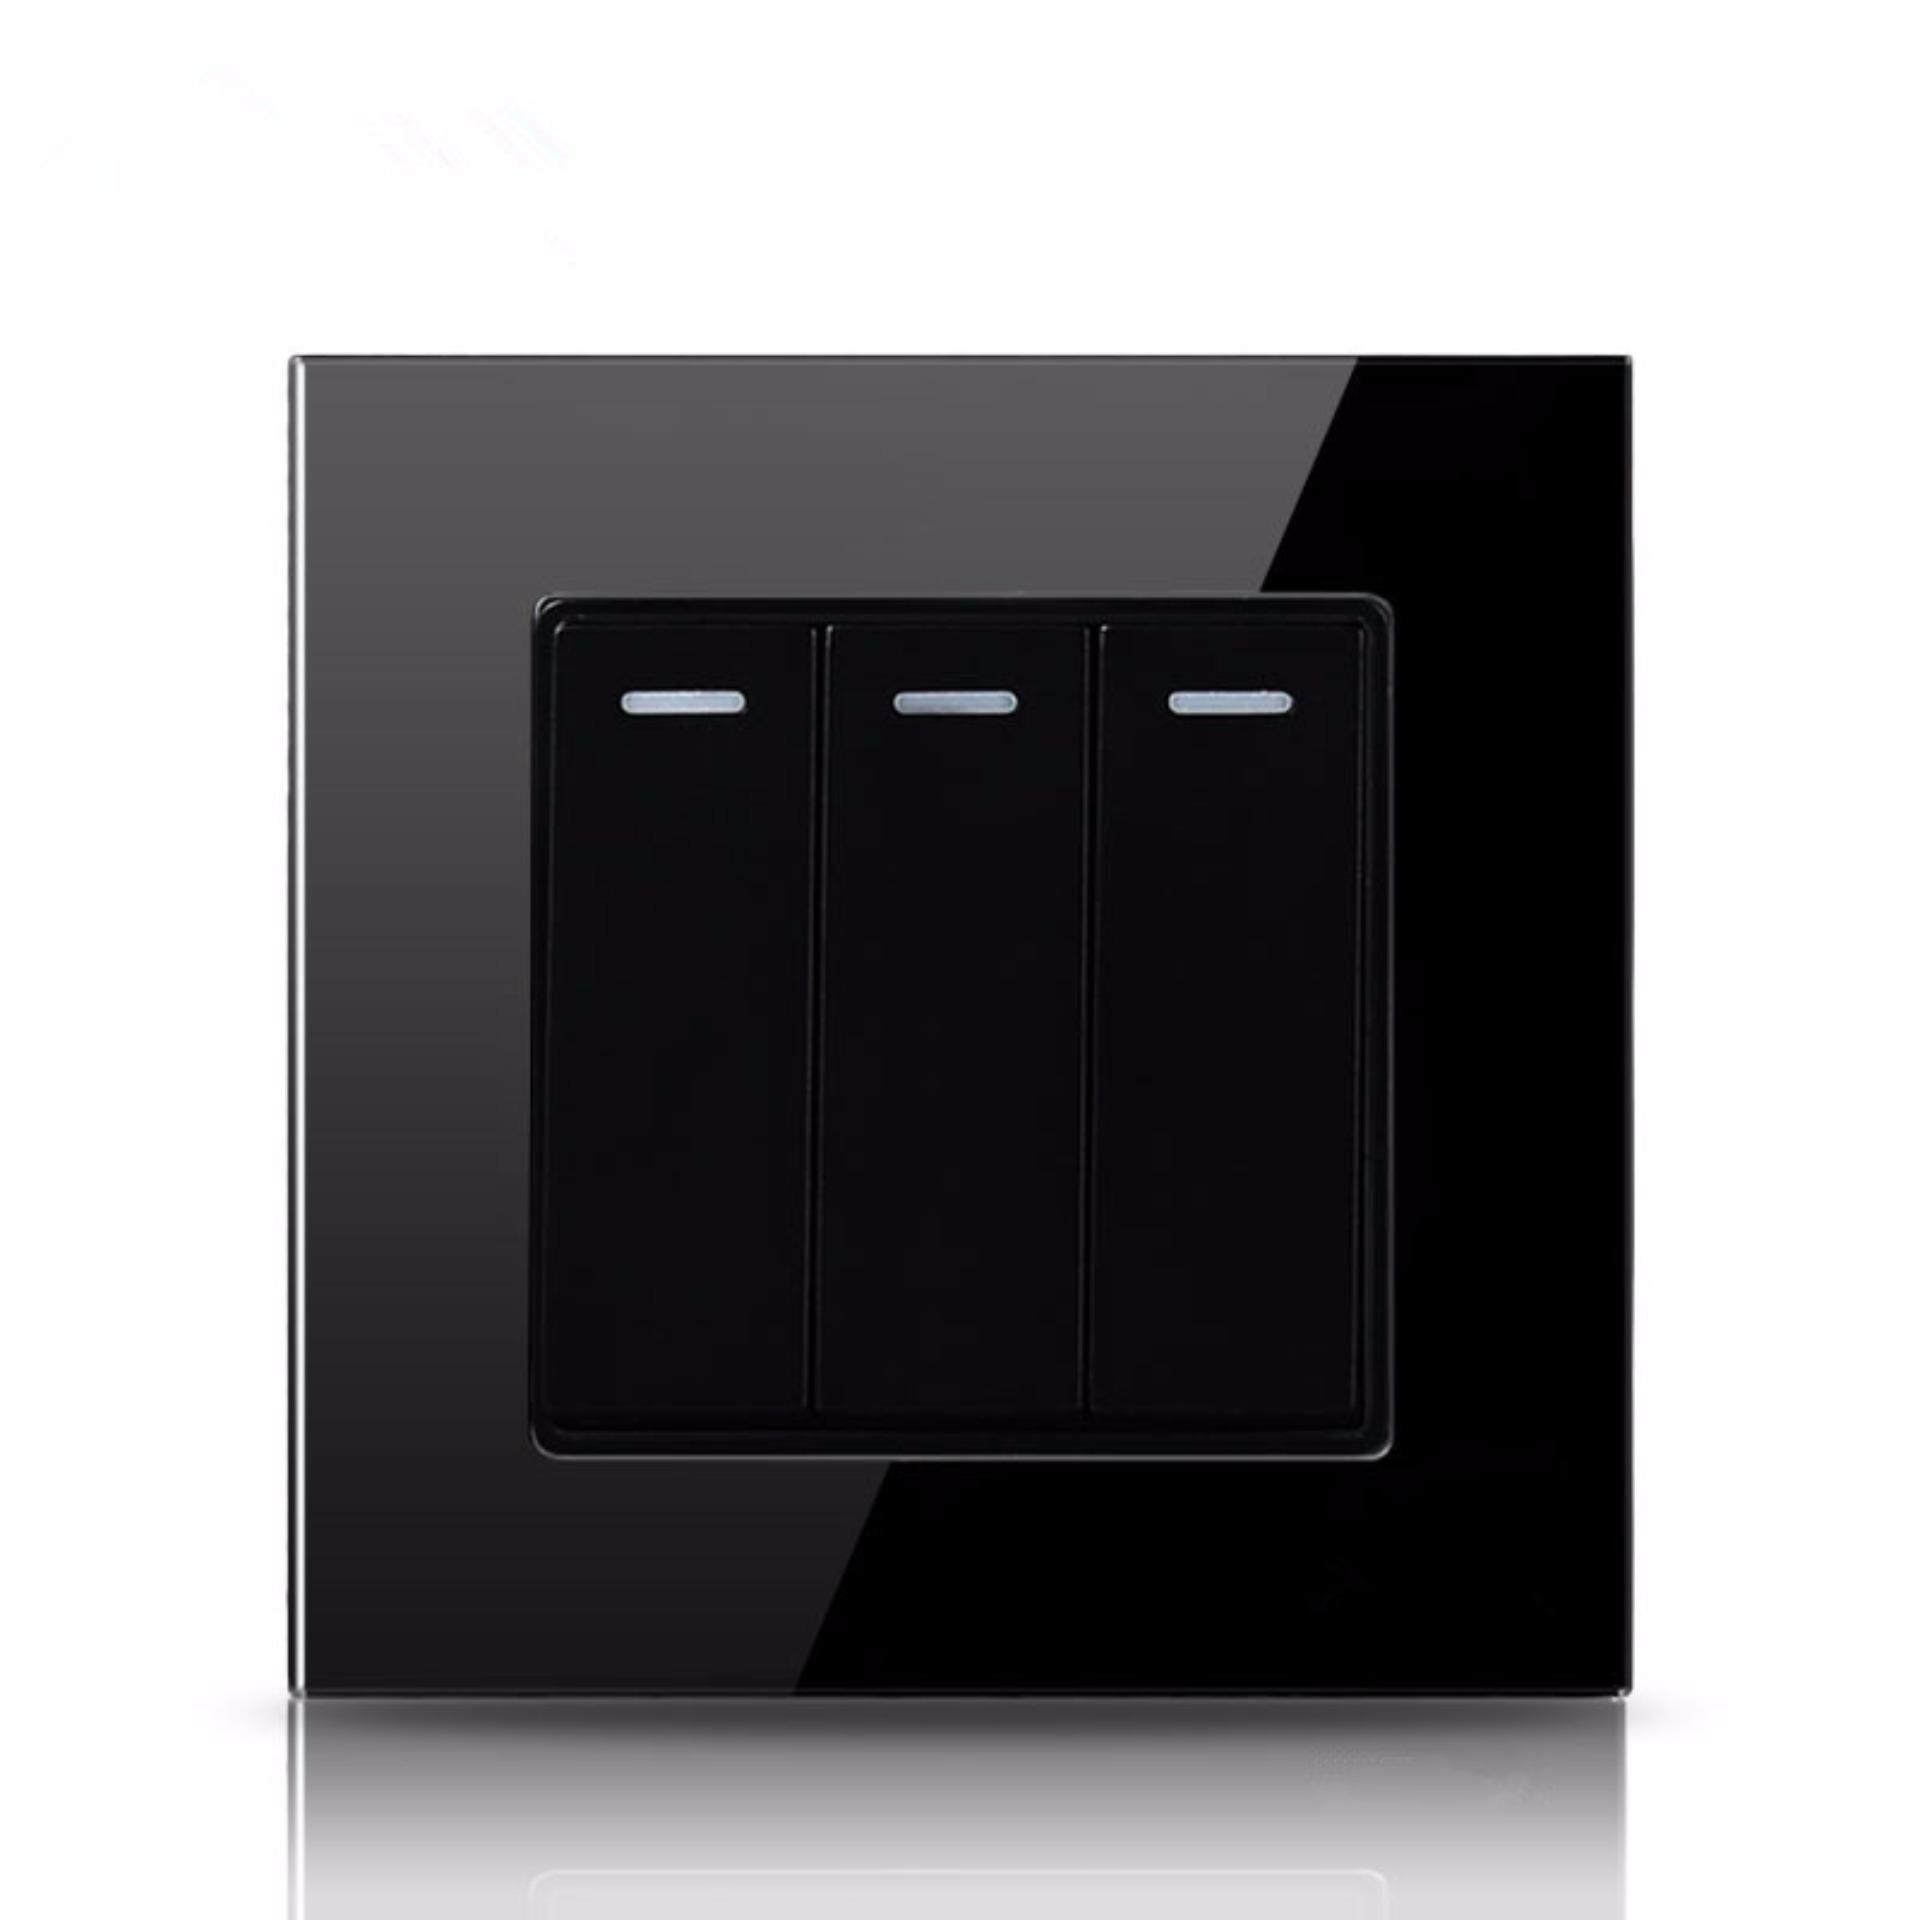 Light Fixtures For Sale Home Lighting Prices Brands Review In 3 Way Switch Plate Gang 2 Black Color And Glass Panel Wall Intl